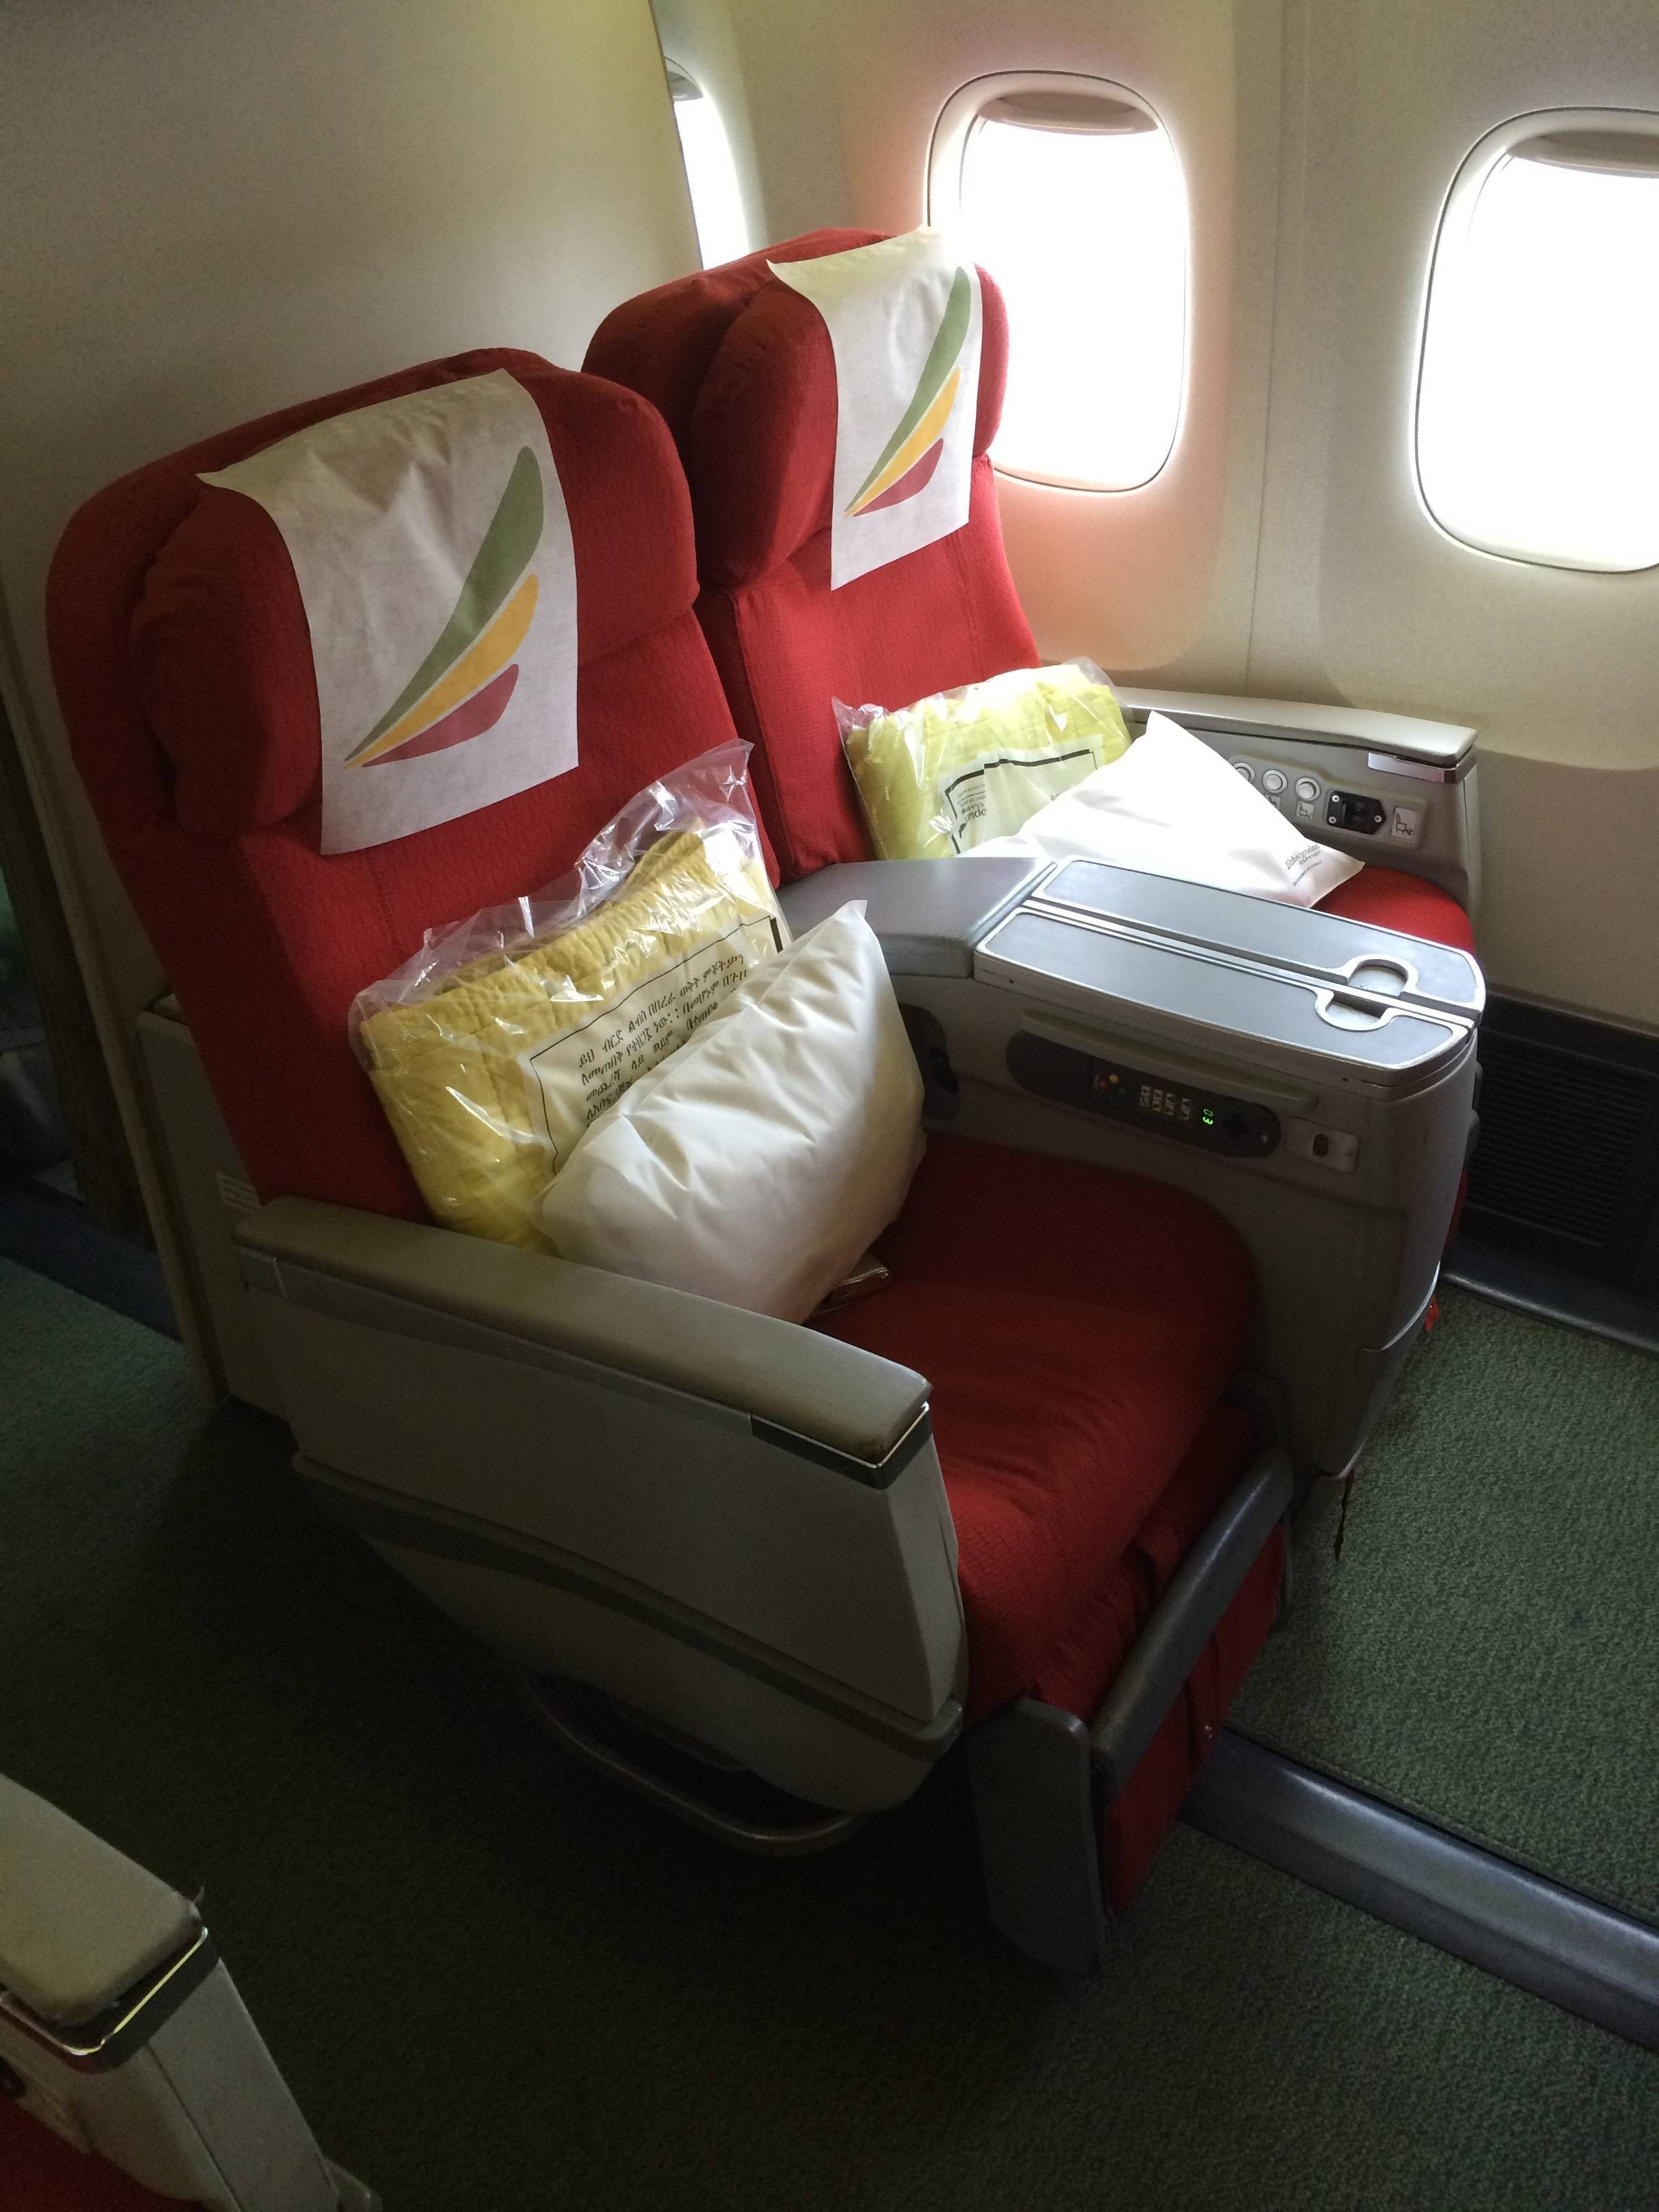 Ethiopian Airlines Business Class Executiva B767 - passageirodeprimeira